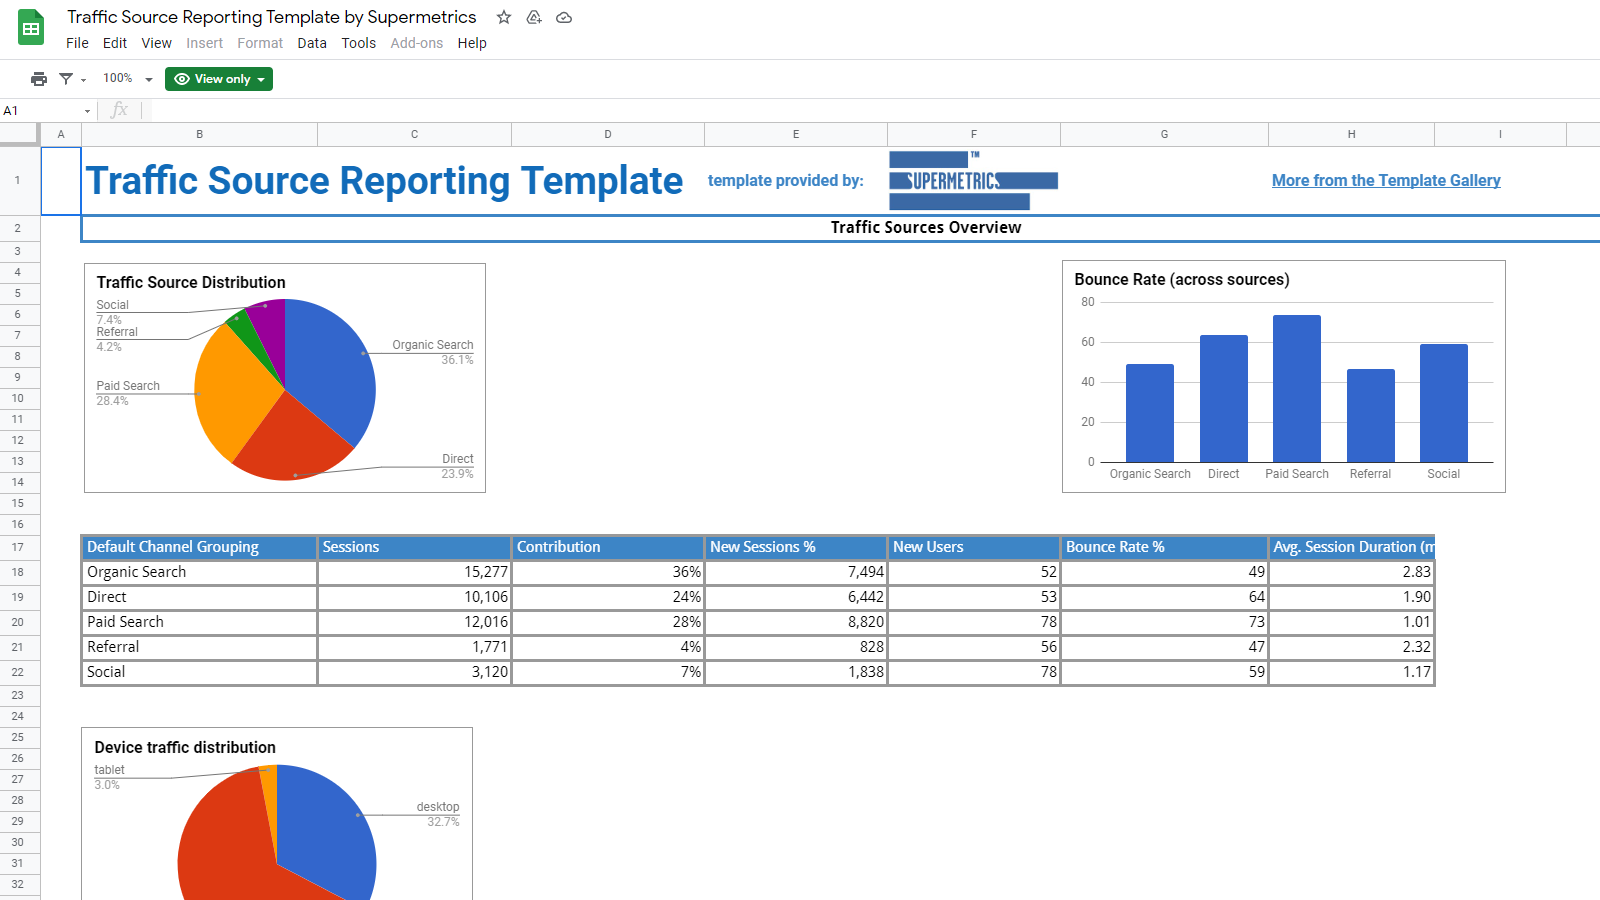 Website traffic by device & source reporting template